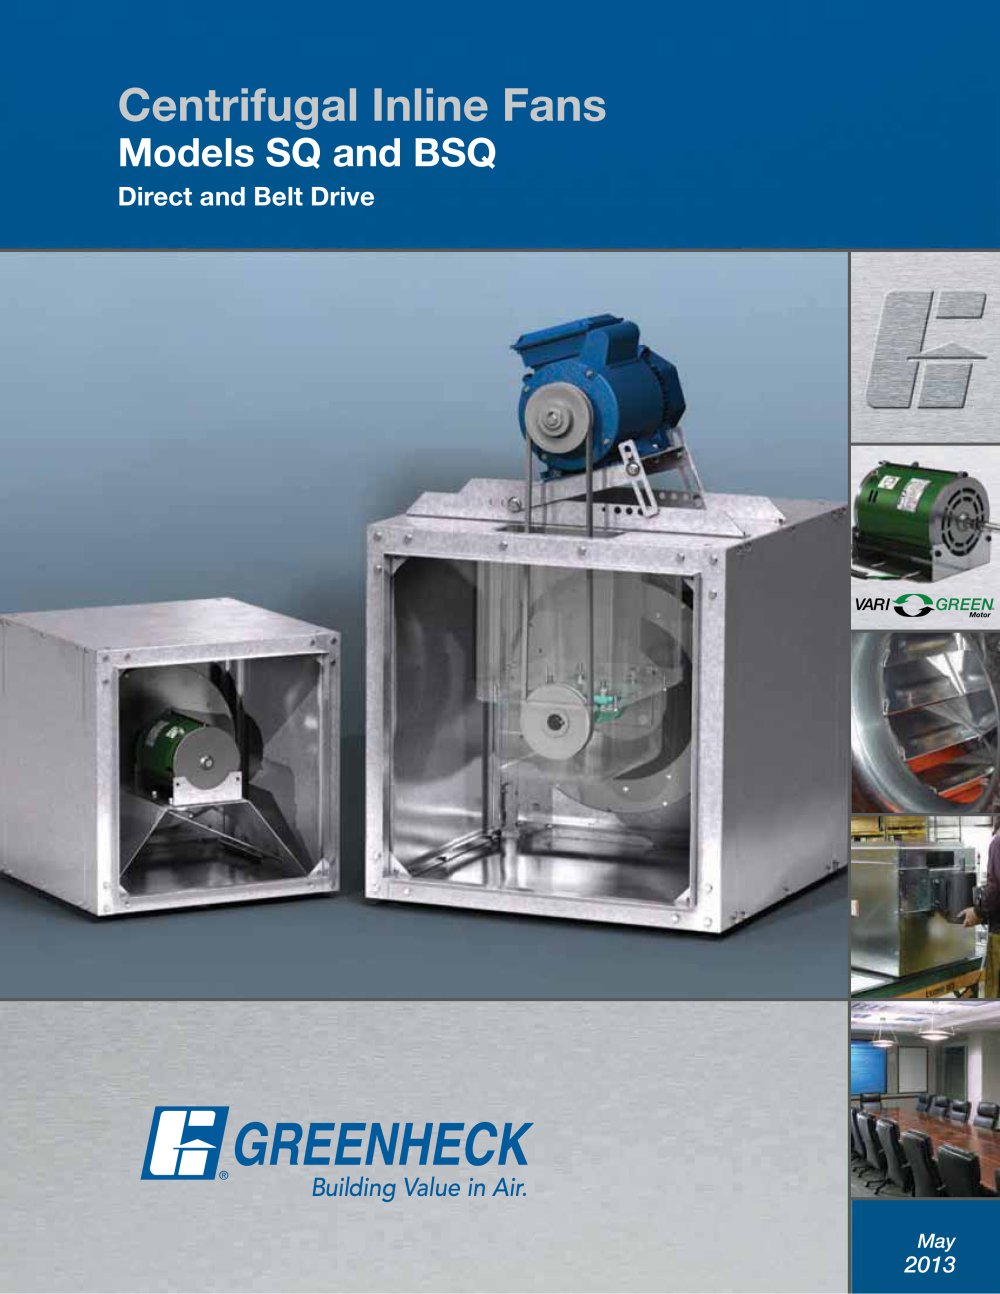 greenheck sq wiring diagram Download-Inline Fans Models SQ and BSQ 1 48 Pages 15-b